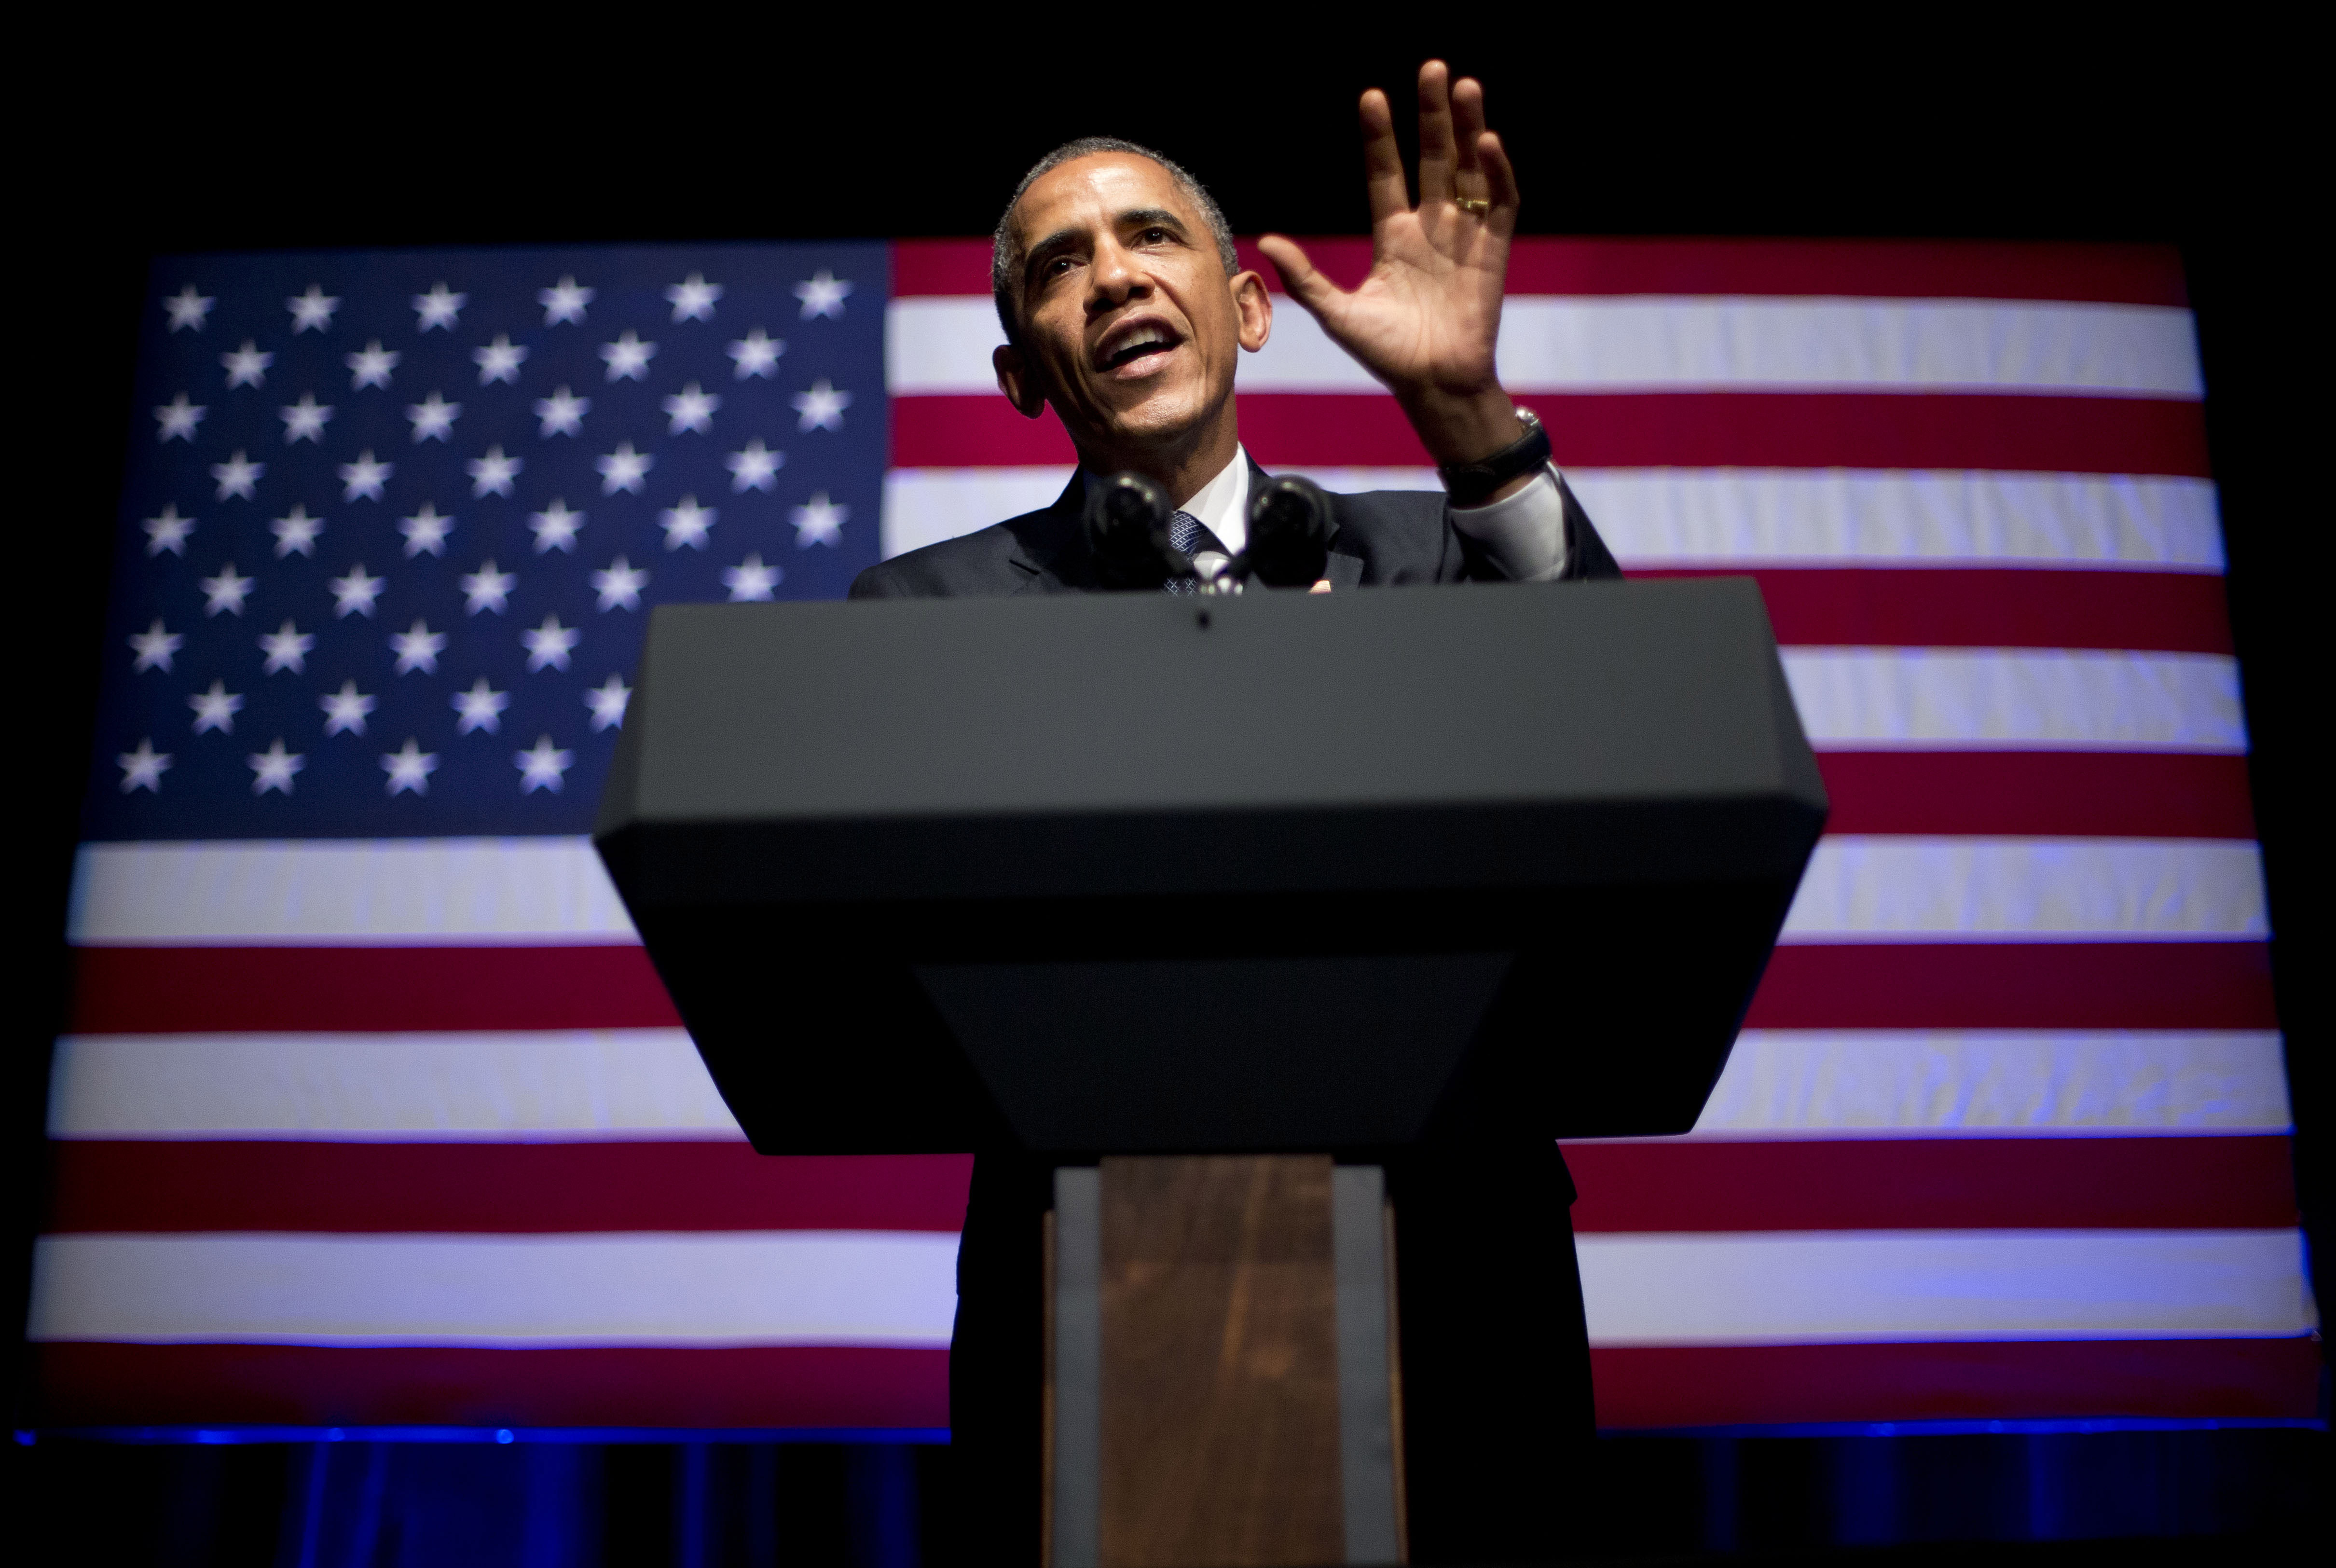 President Barack Obama speaks at the Democratic National Committee's annual  Lesbian, Gay, Bisexual and